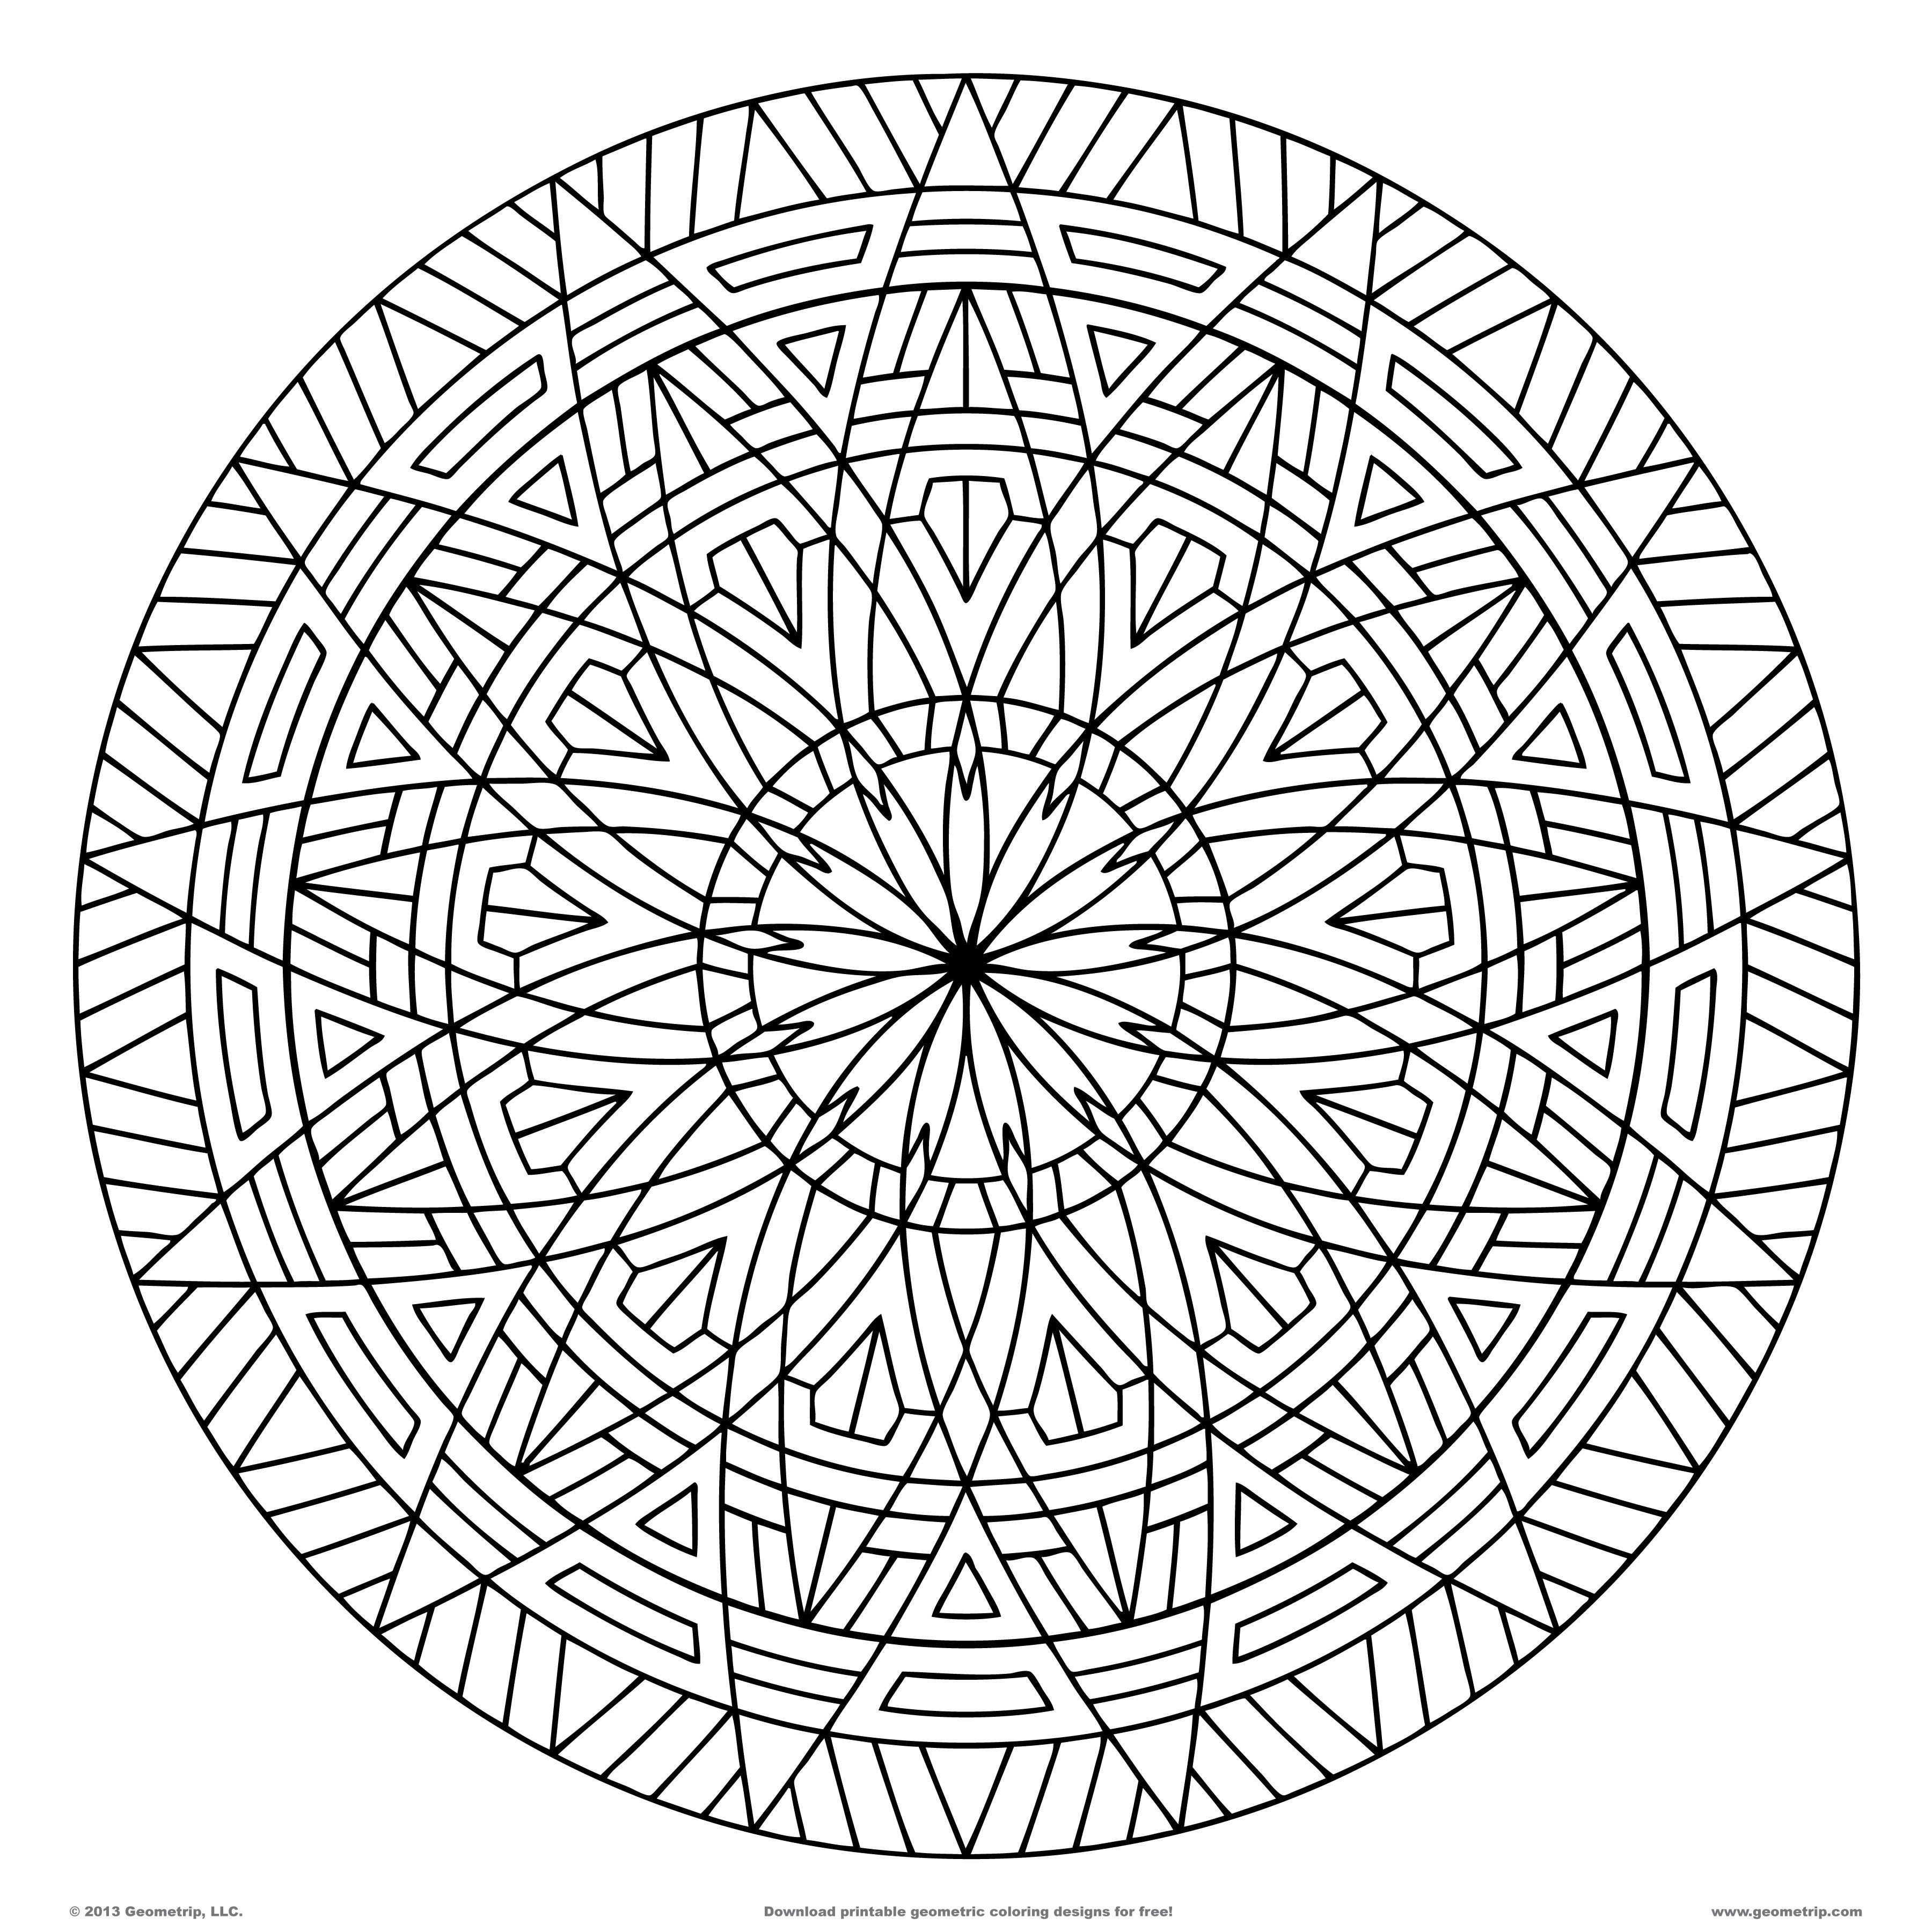 images of printable hard geometric coloring pages geometripcom free geometric coloring designs - Cool Coloring Pages To Print For Free